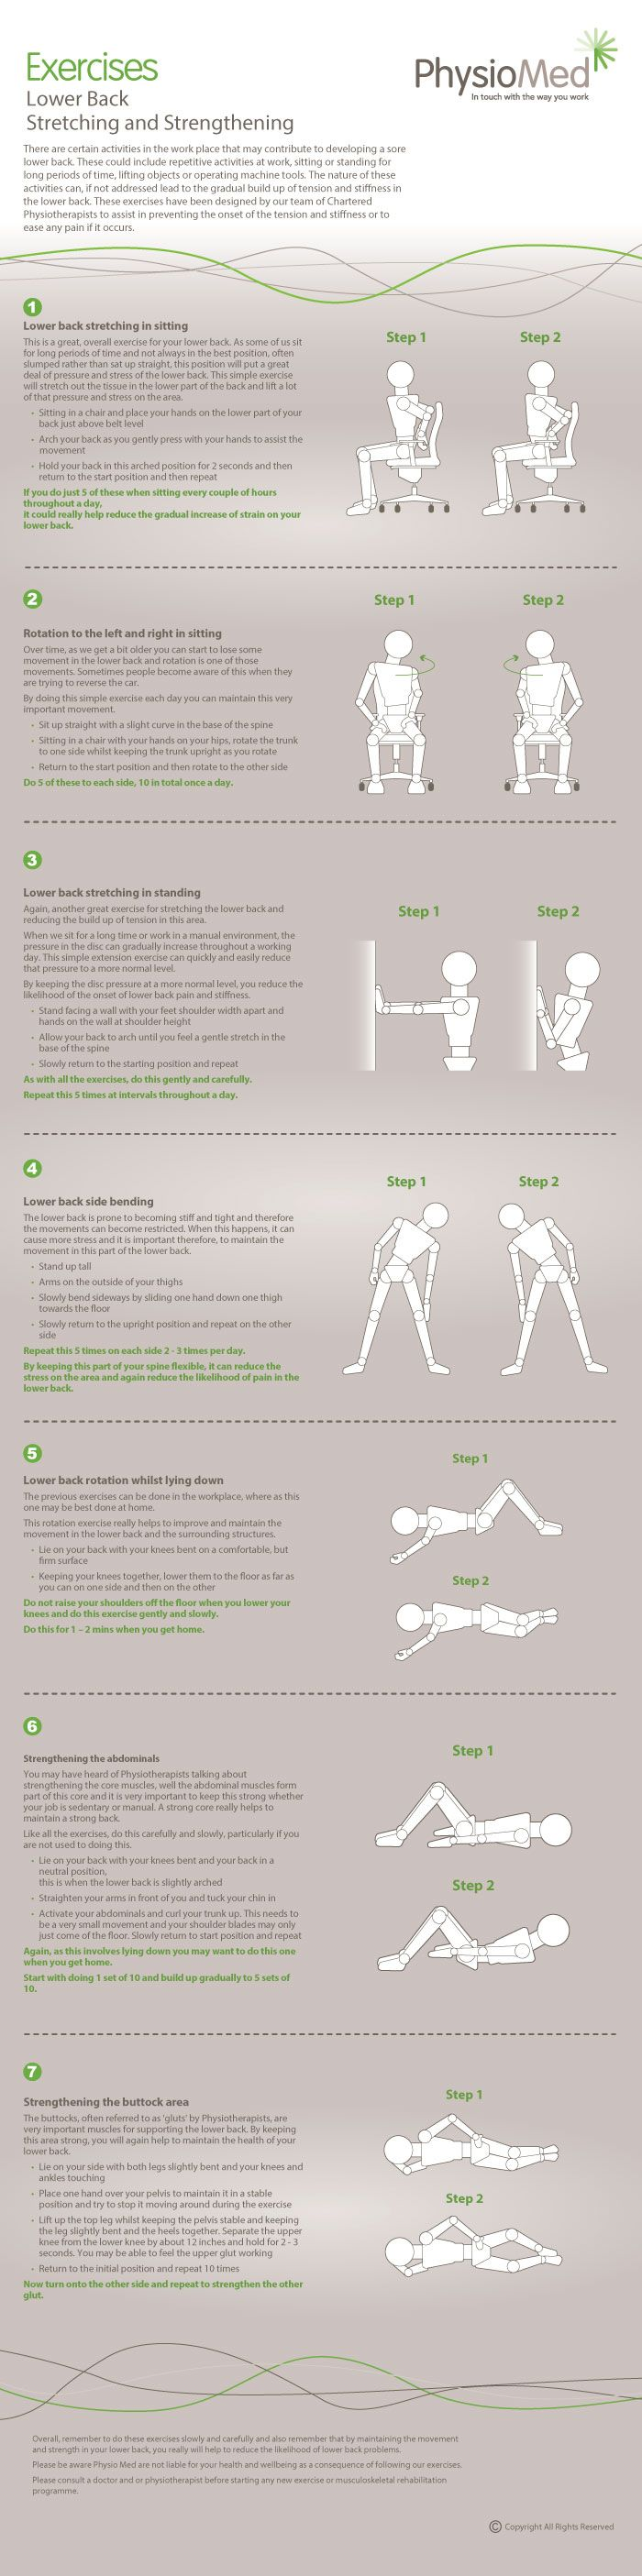 Lower Back Stretching and Strengthening Exercises - Occupational Physiotherapy. Our lower back exercise infographic helps to target and inhibit common lower back conditions. The exercises are simple, effective and can be performed in the workplace.